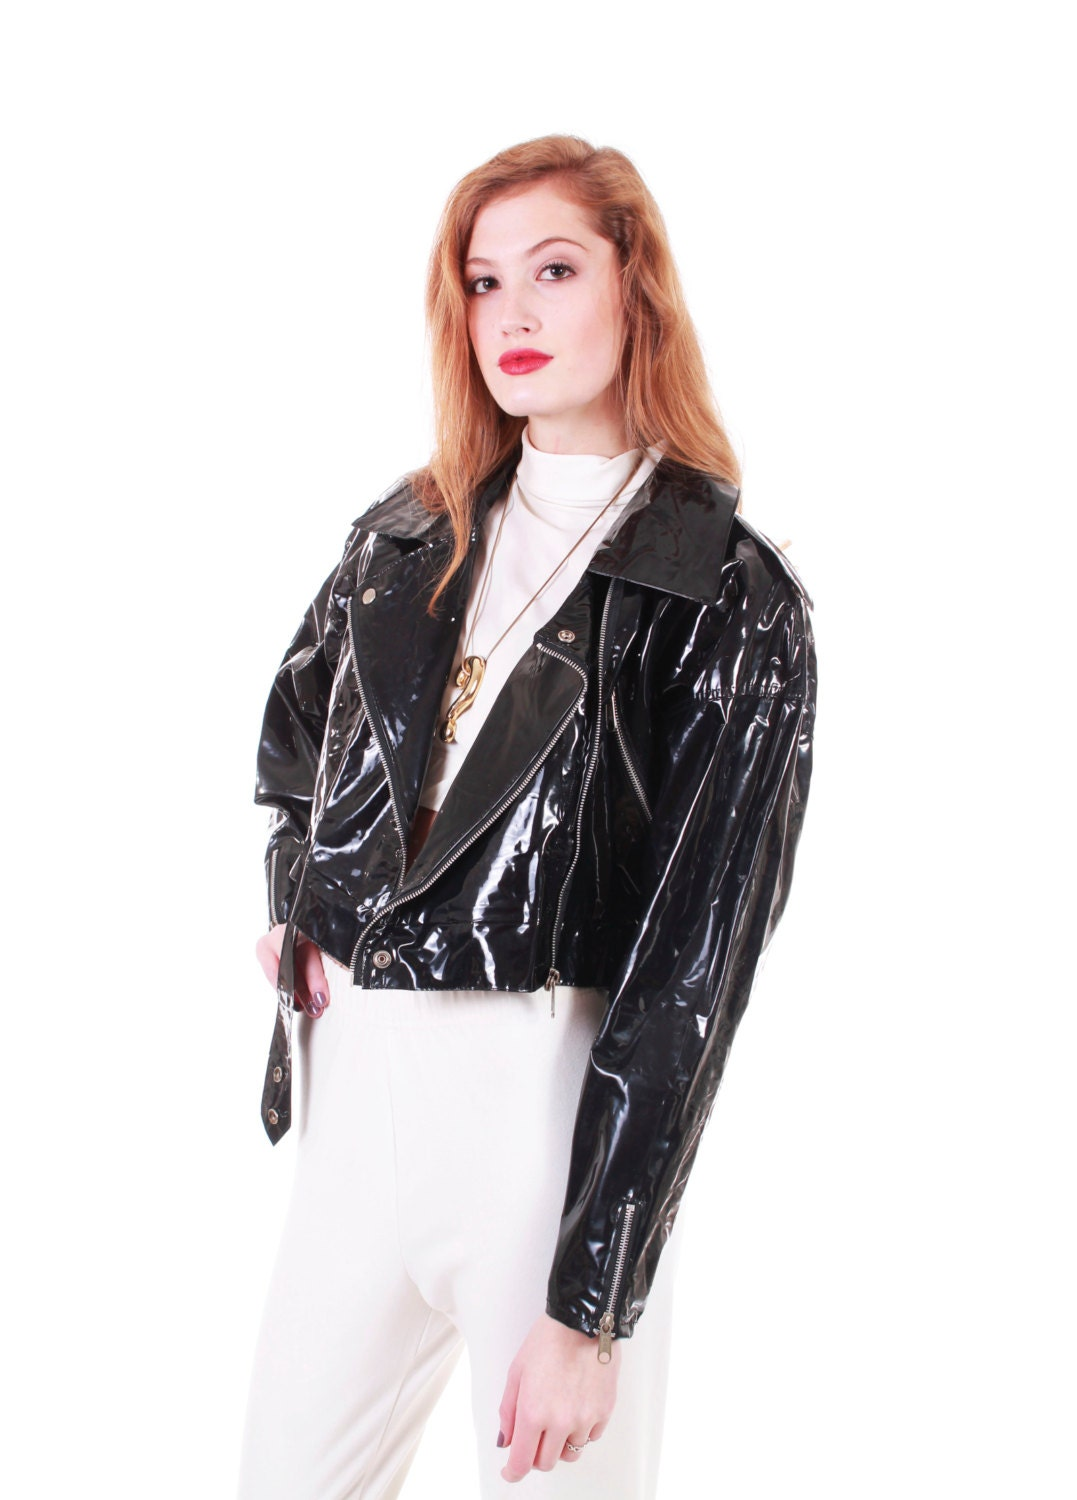 Reserved 90s goth clubkid black shiny pvc motorcycle biker jacket s - Previous Item Created With Sketch Next Item Created With Sketch